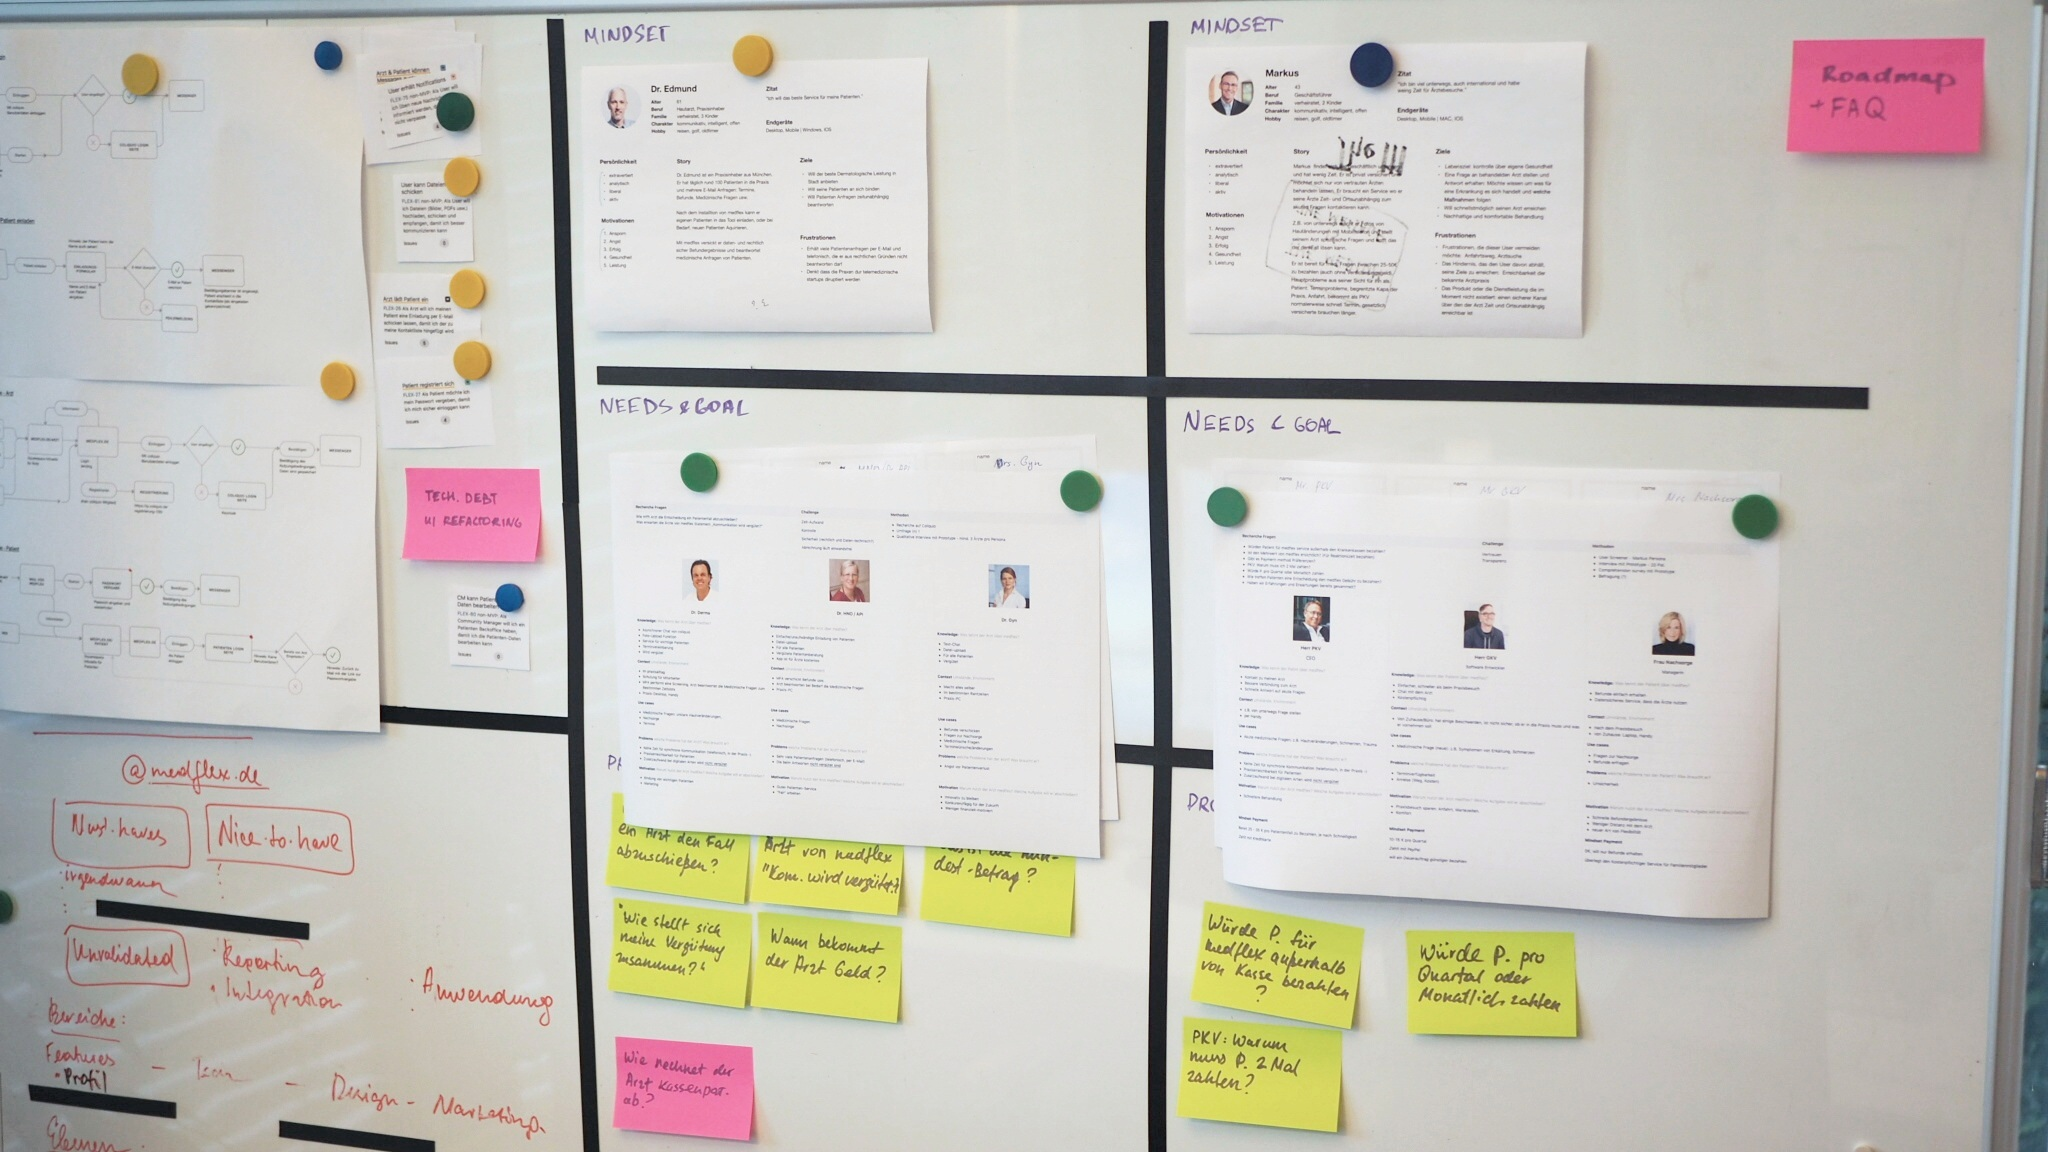 Workshops on creating User Personas